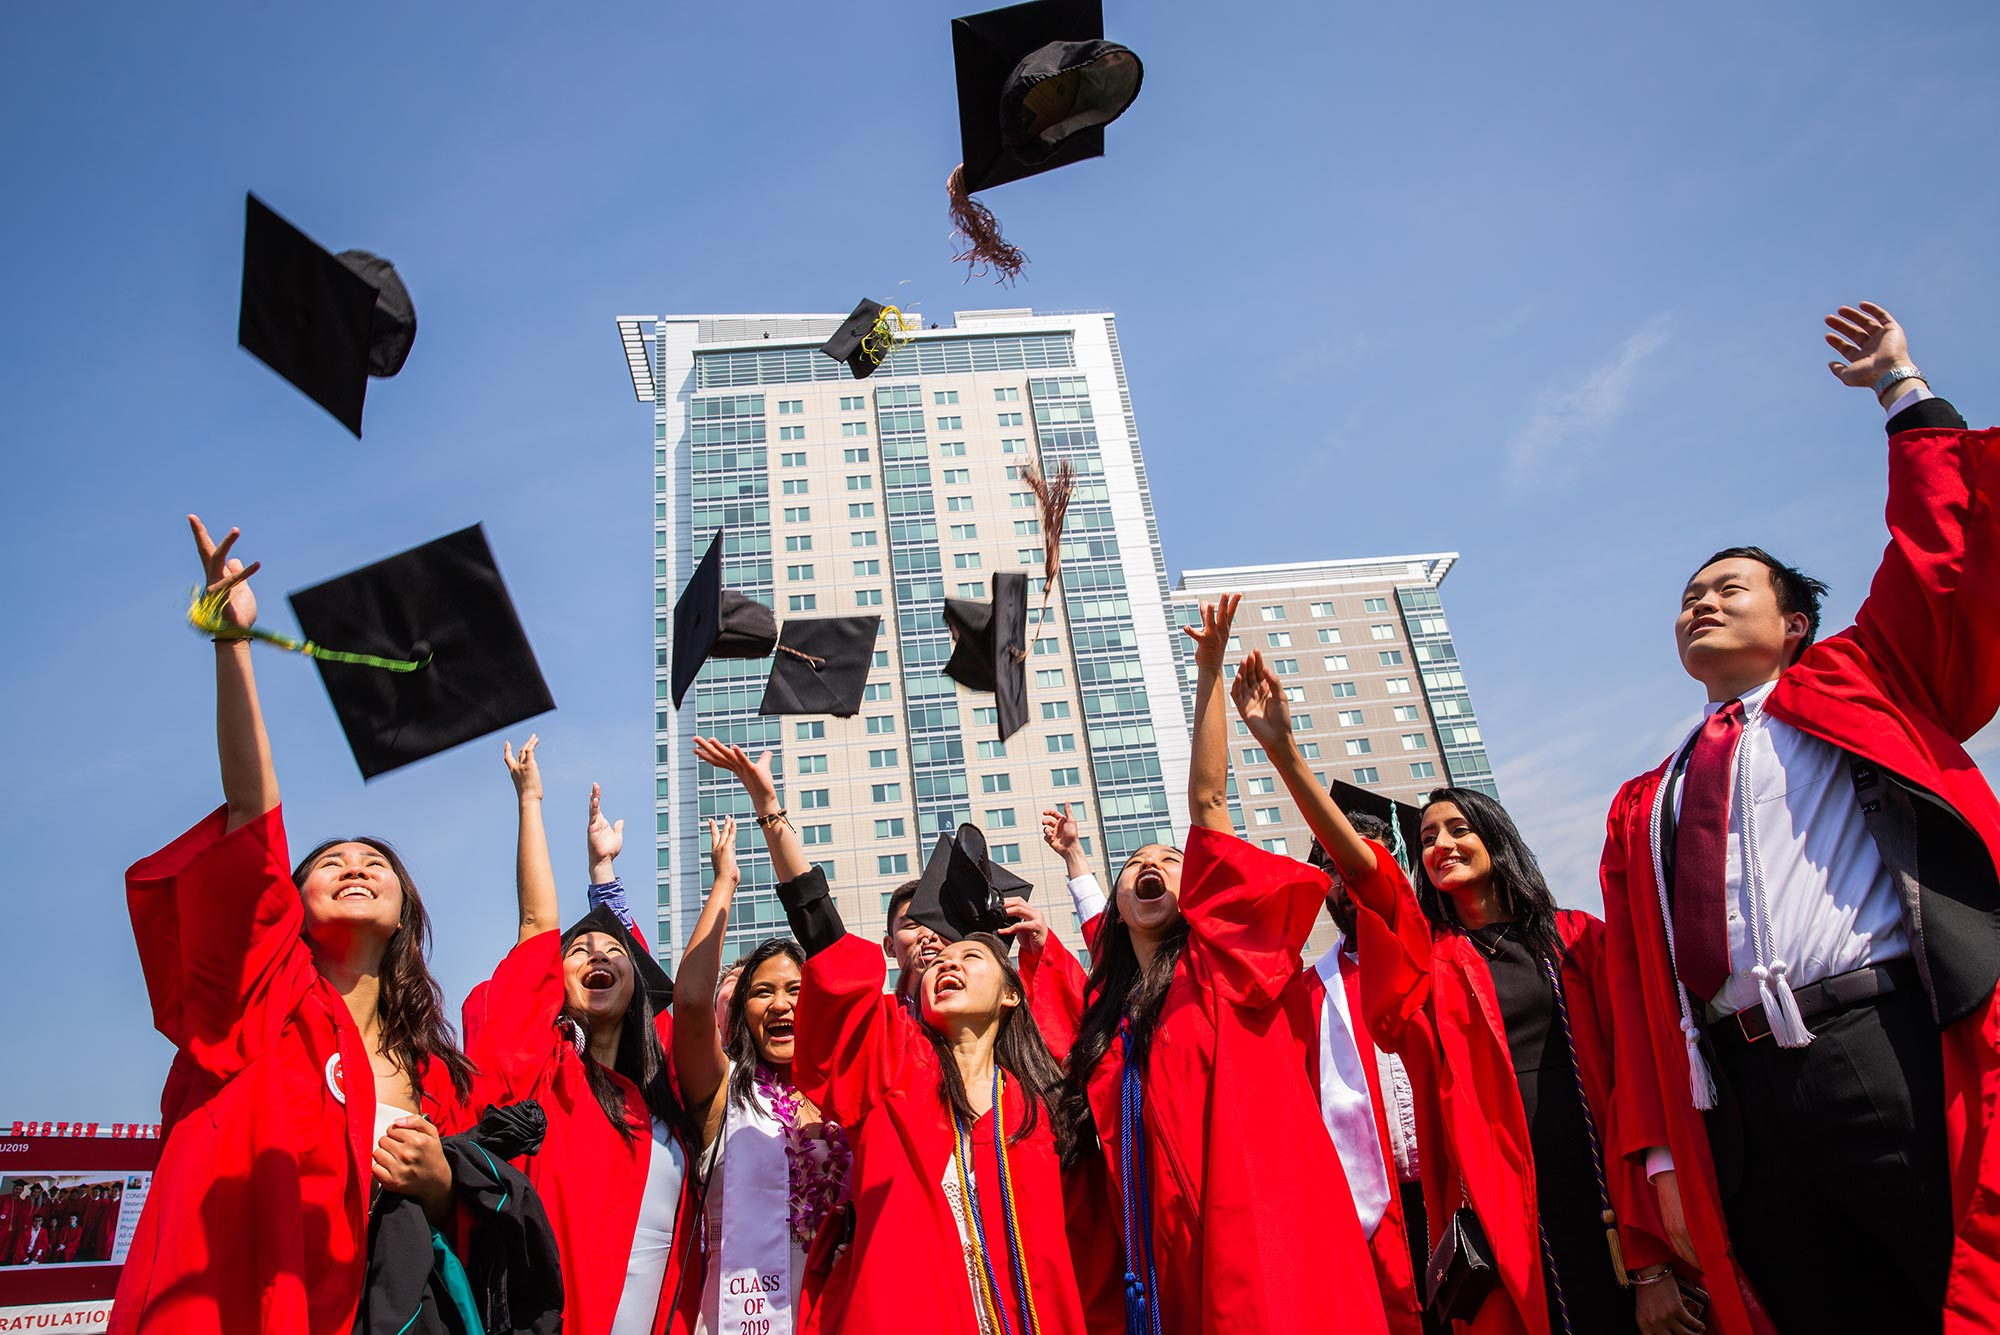 Photo of 2019 graduates at Boston University's Commencement on Nickerson Field on May 19, 2019 throwing their hats into the air. They are wearing red gowns. It's a sunny day and the sky is blue.